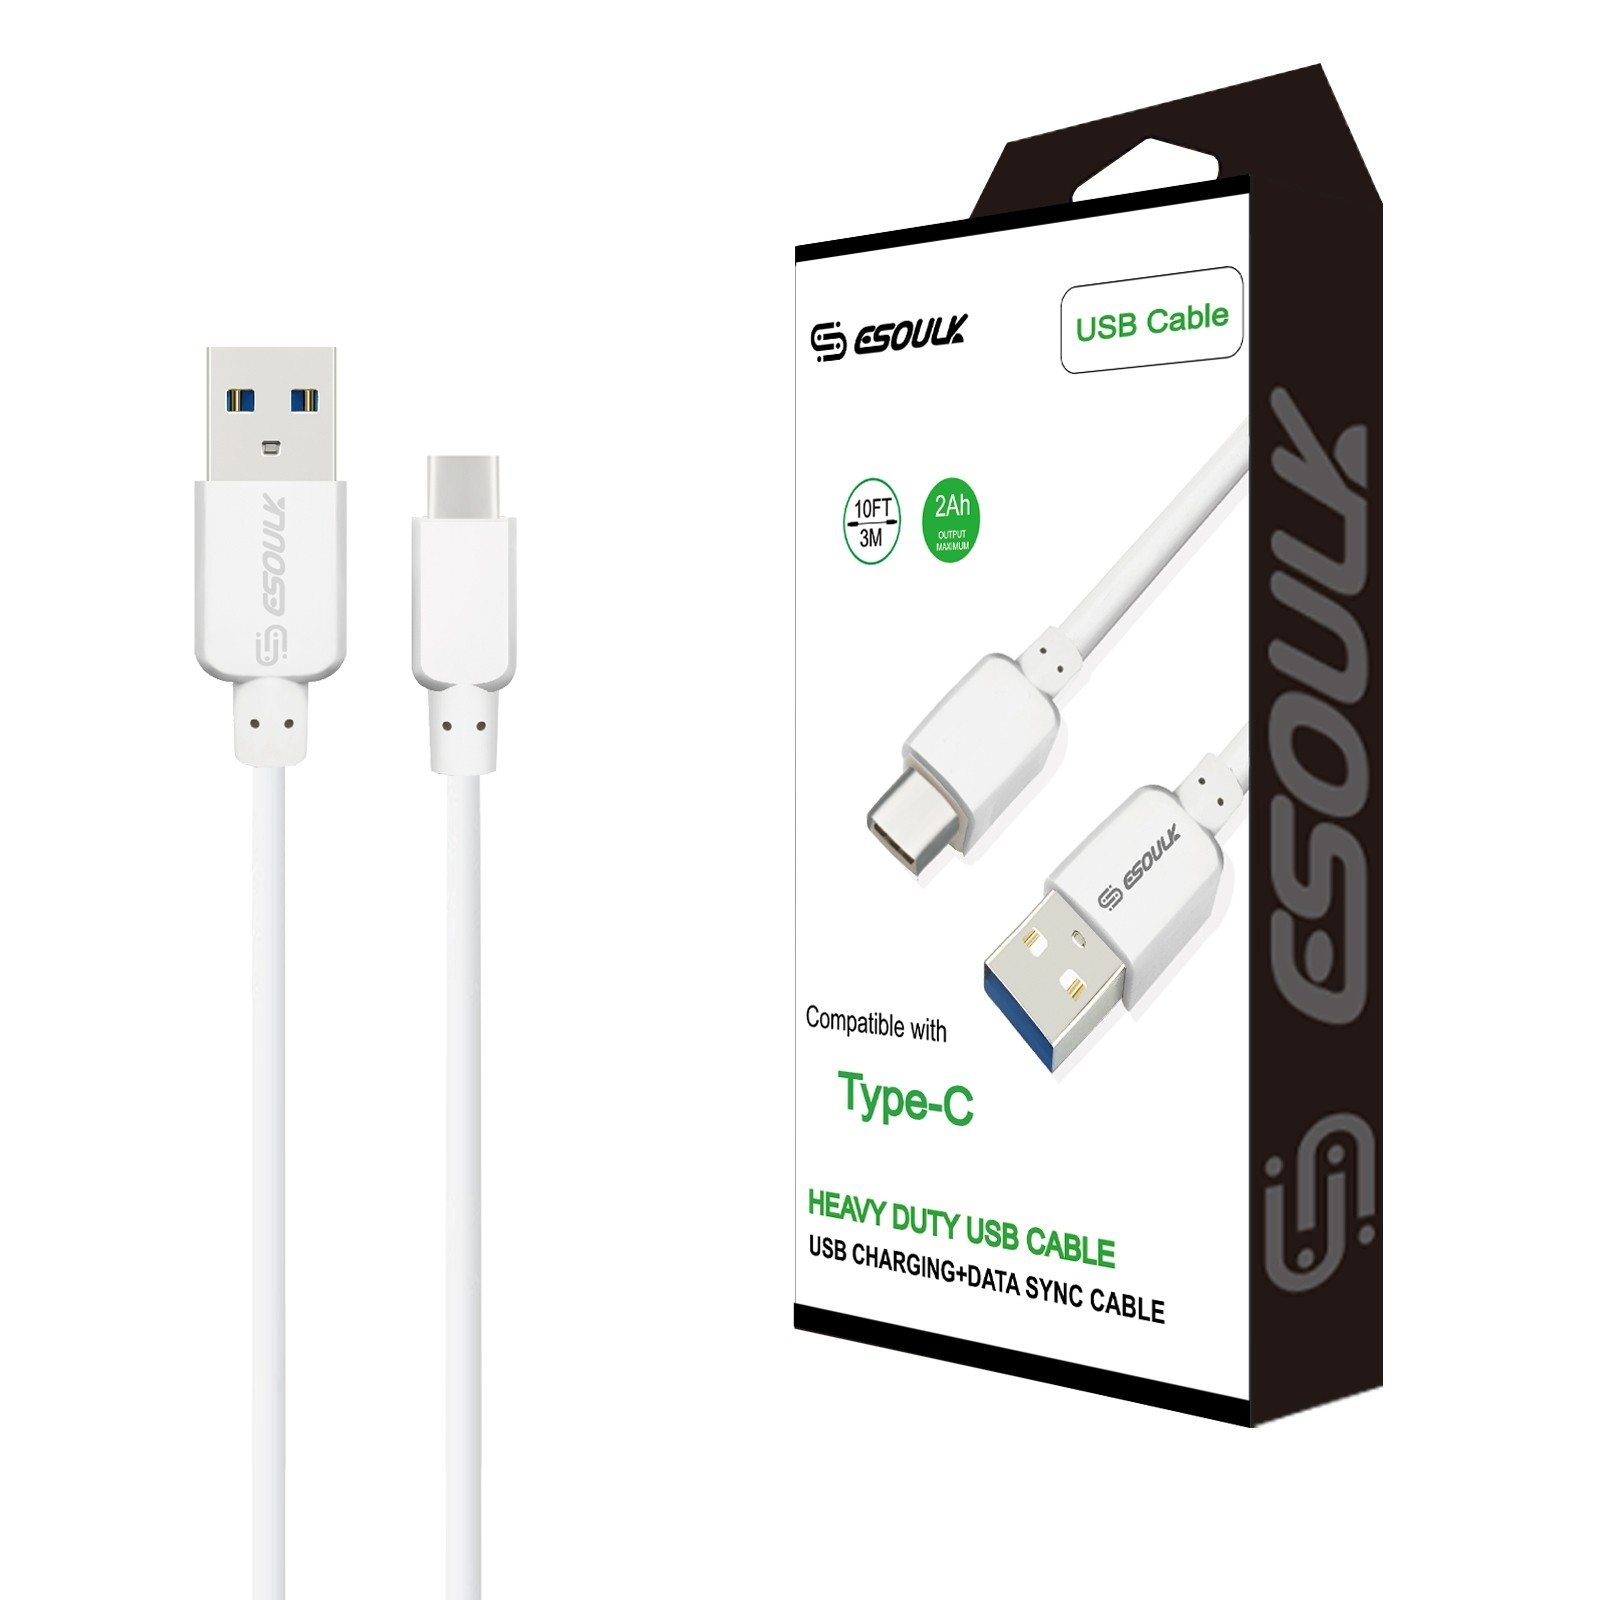 heavy duty metal braided lightning usb charger cable 3m  usb cord  10ft  white